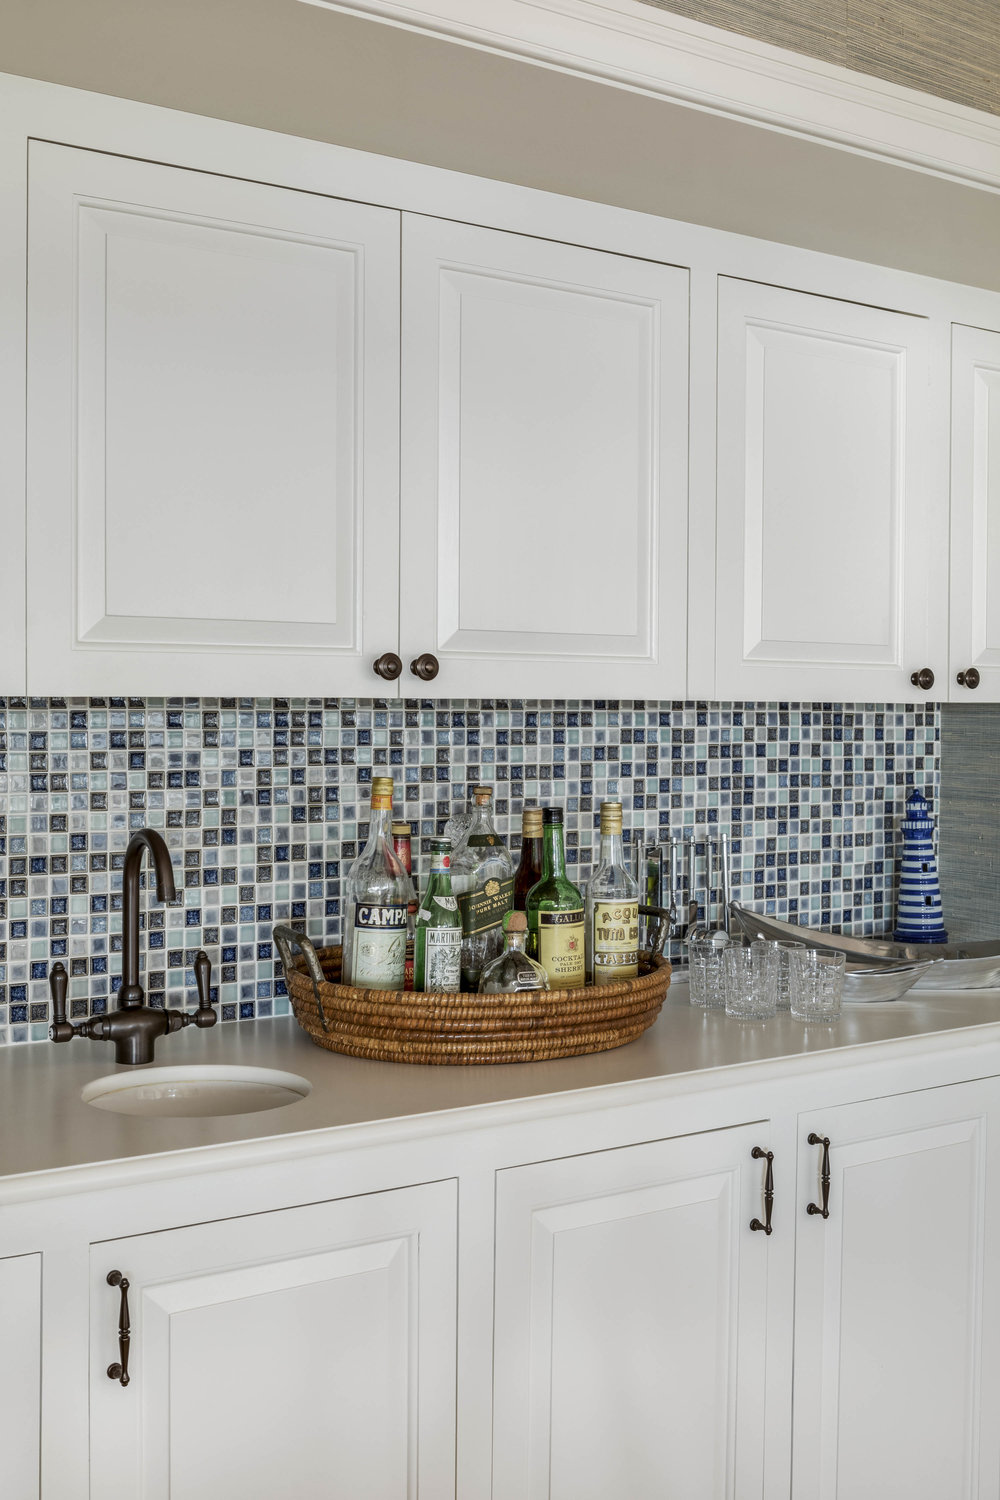 Bar area with blue and white tiled backsplash